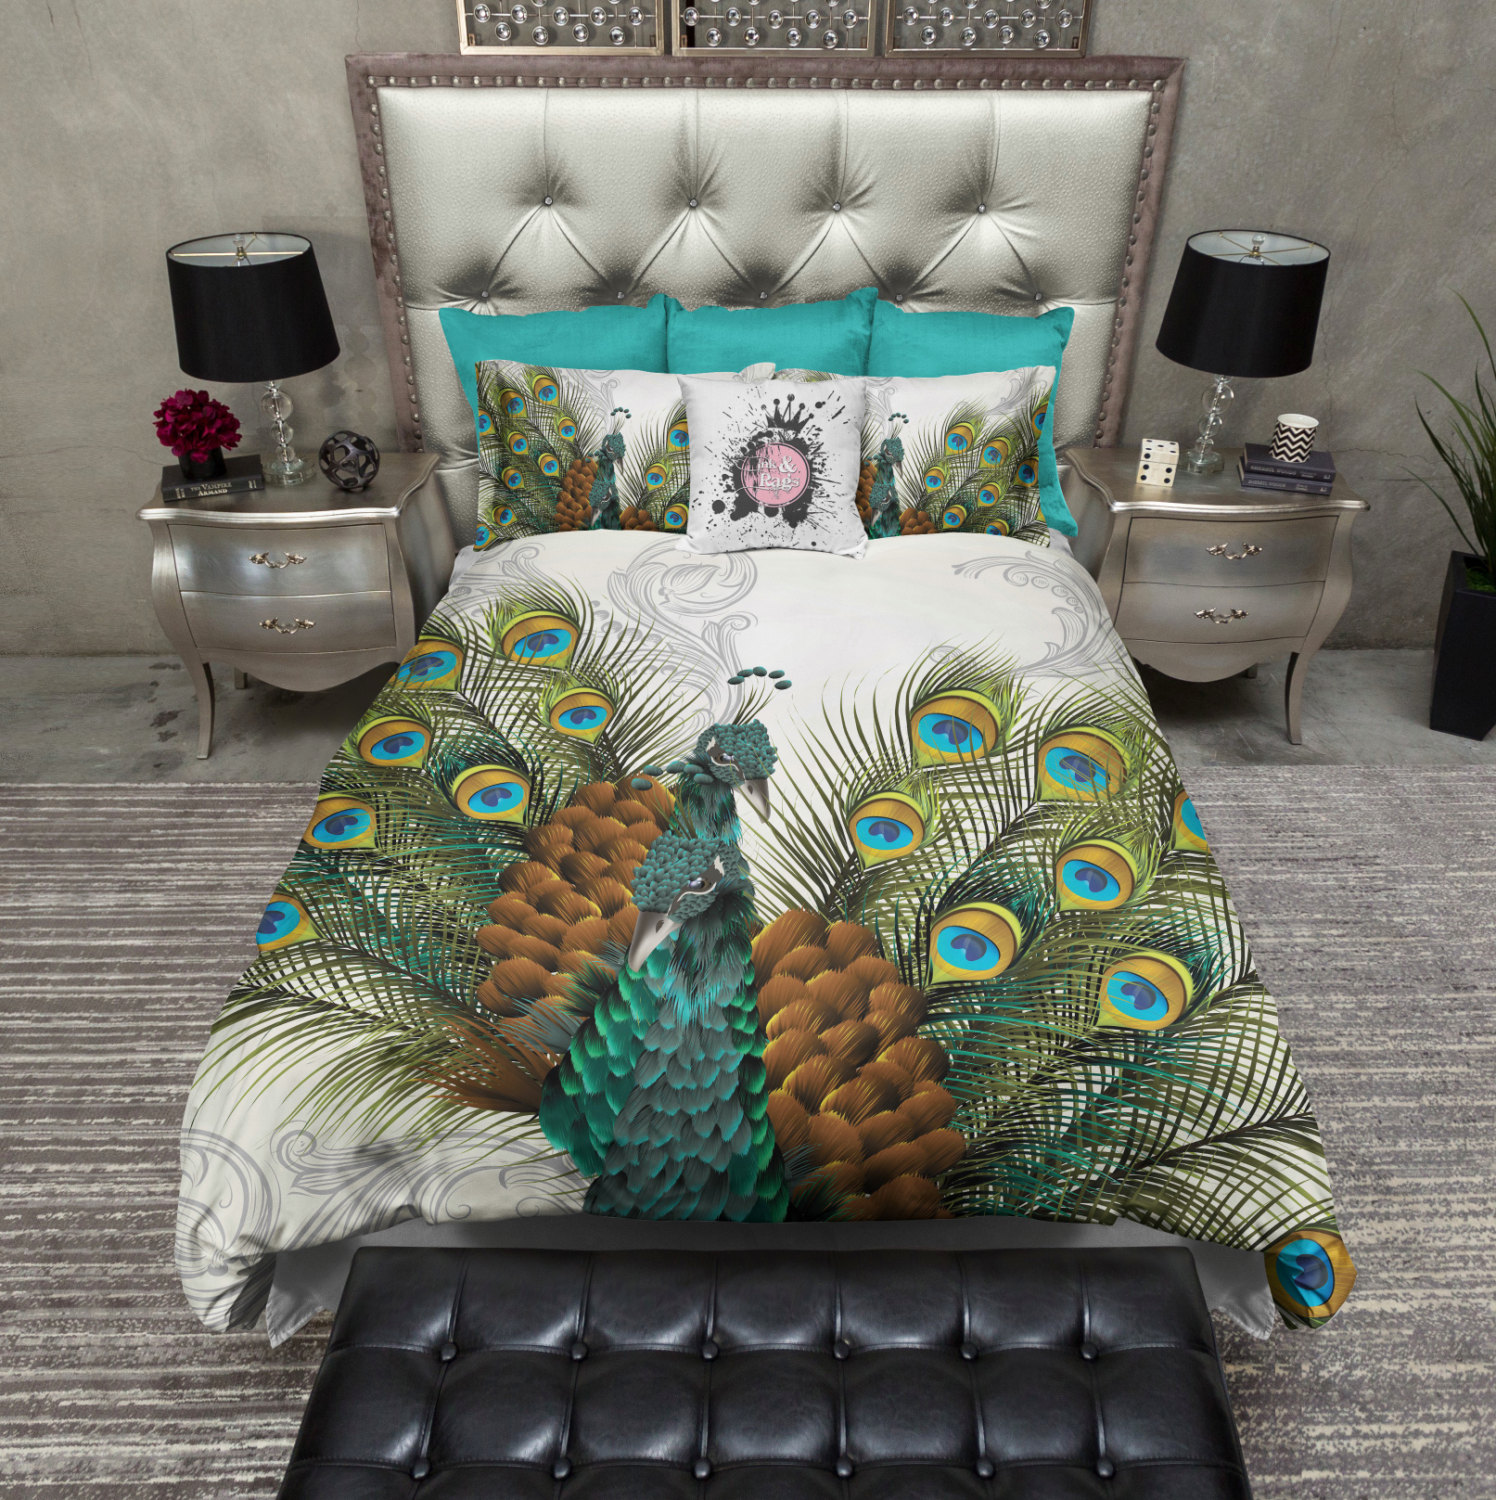 Peacock Print Bedding | Peacock Pattern Bedding | Peacock Bedding